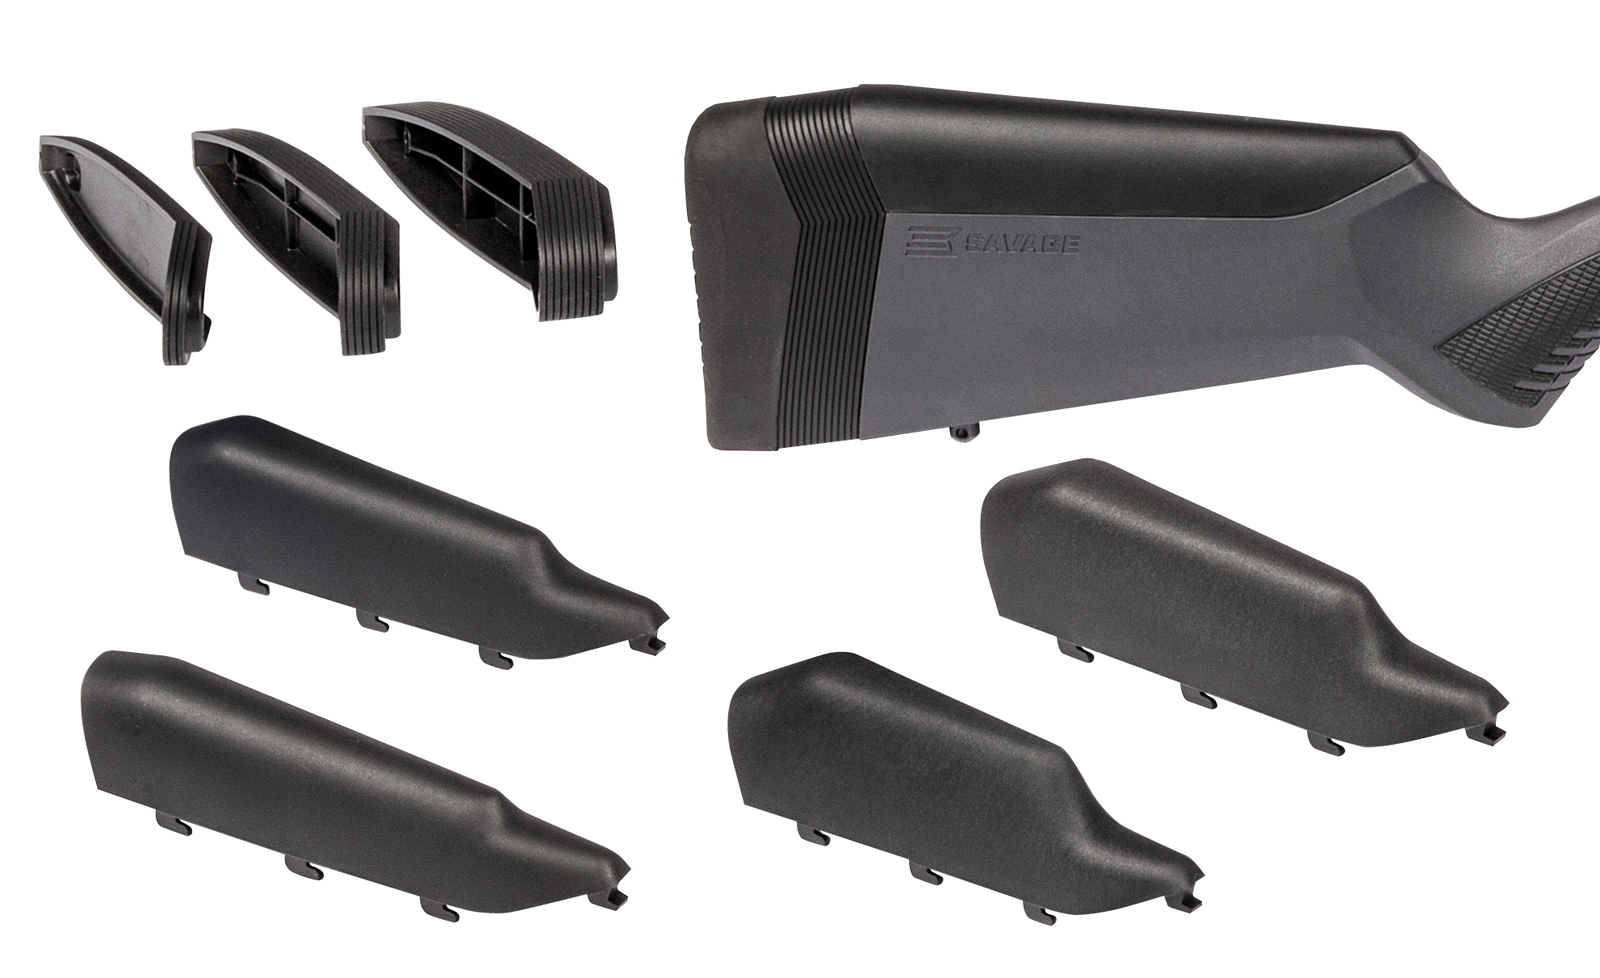 Three butt pad spacers and four different comb height options are included with all AccuFit equipped models.